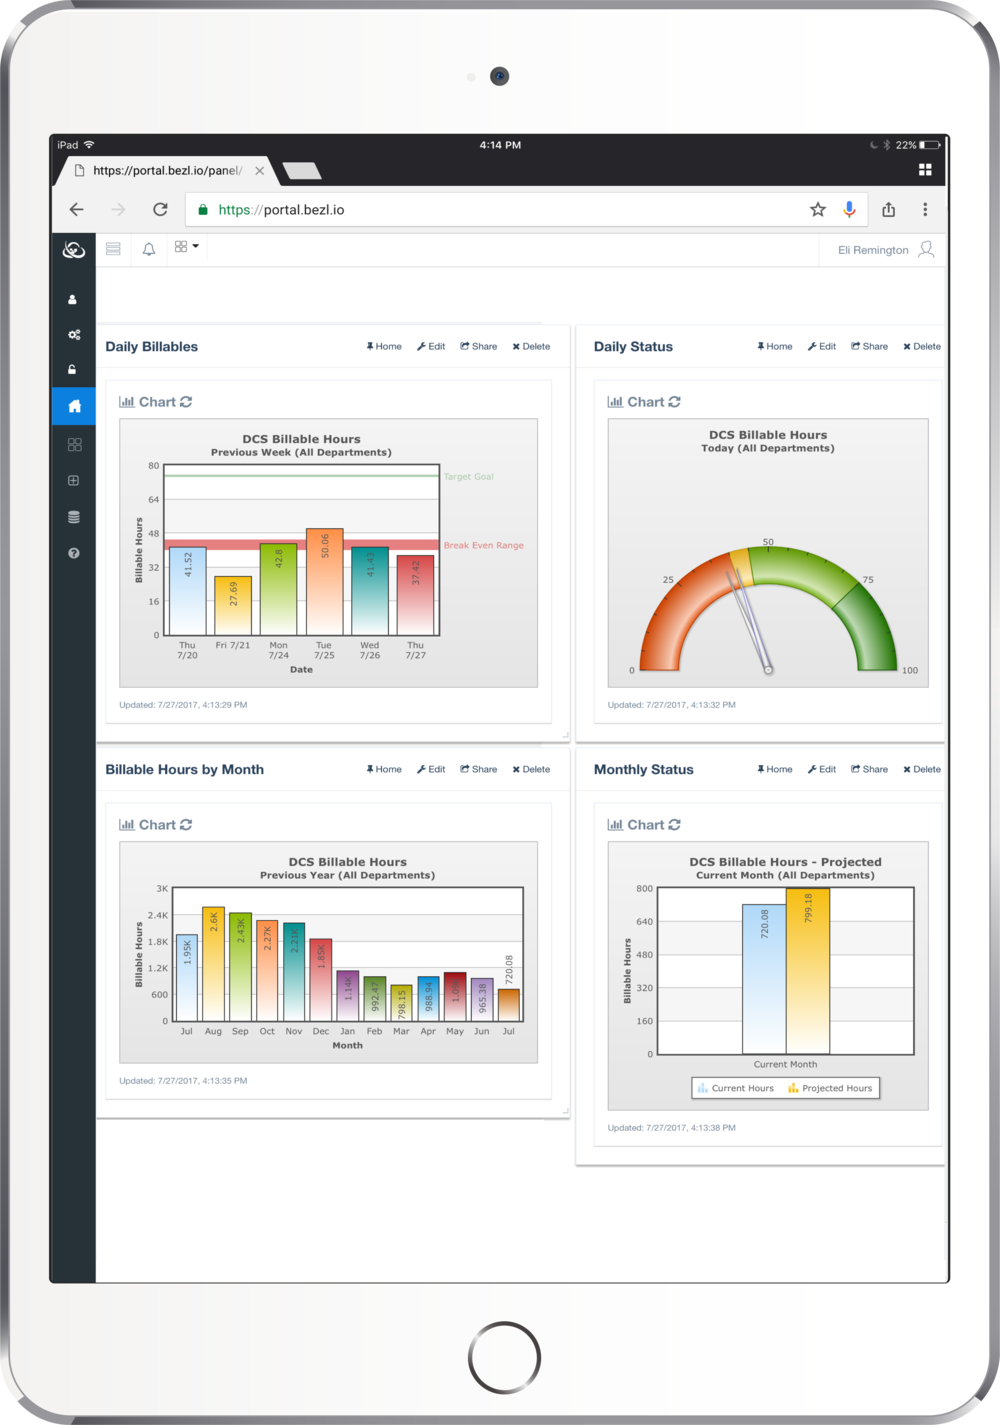 Mock-up of a mobile phone and a Bezlio actionable dashboard, showing real-time data analytics on any mobile device. The data analytics displayed can be based on a manufacturing ERP system or a sales CRM system, or both!